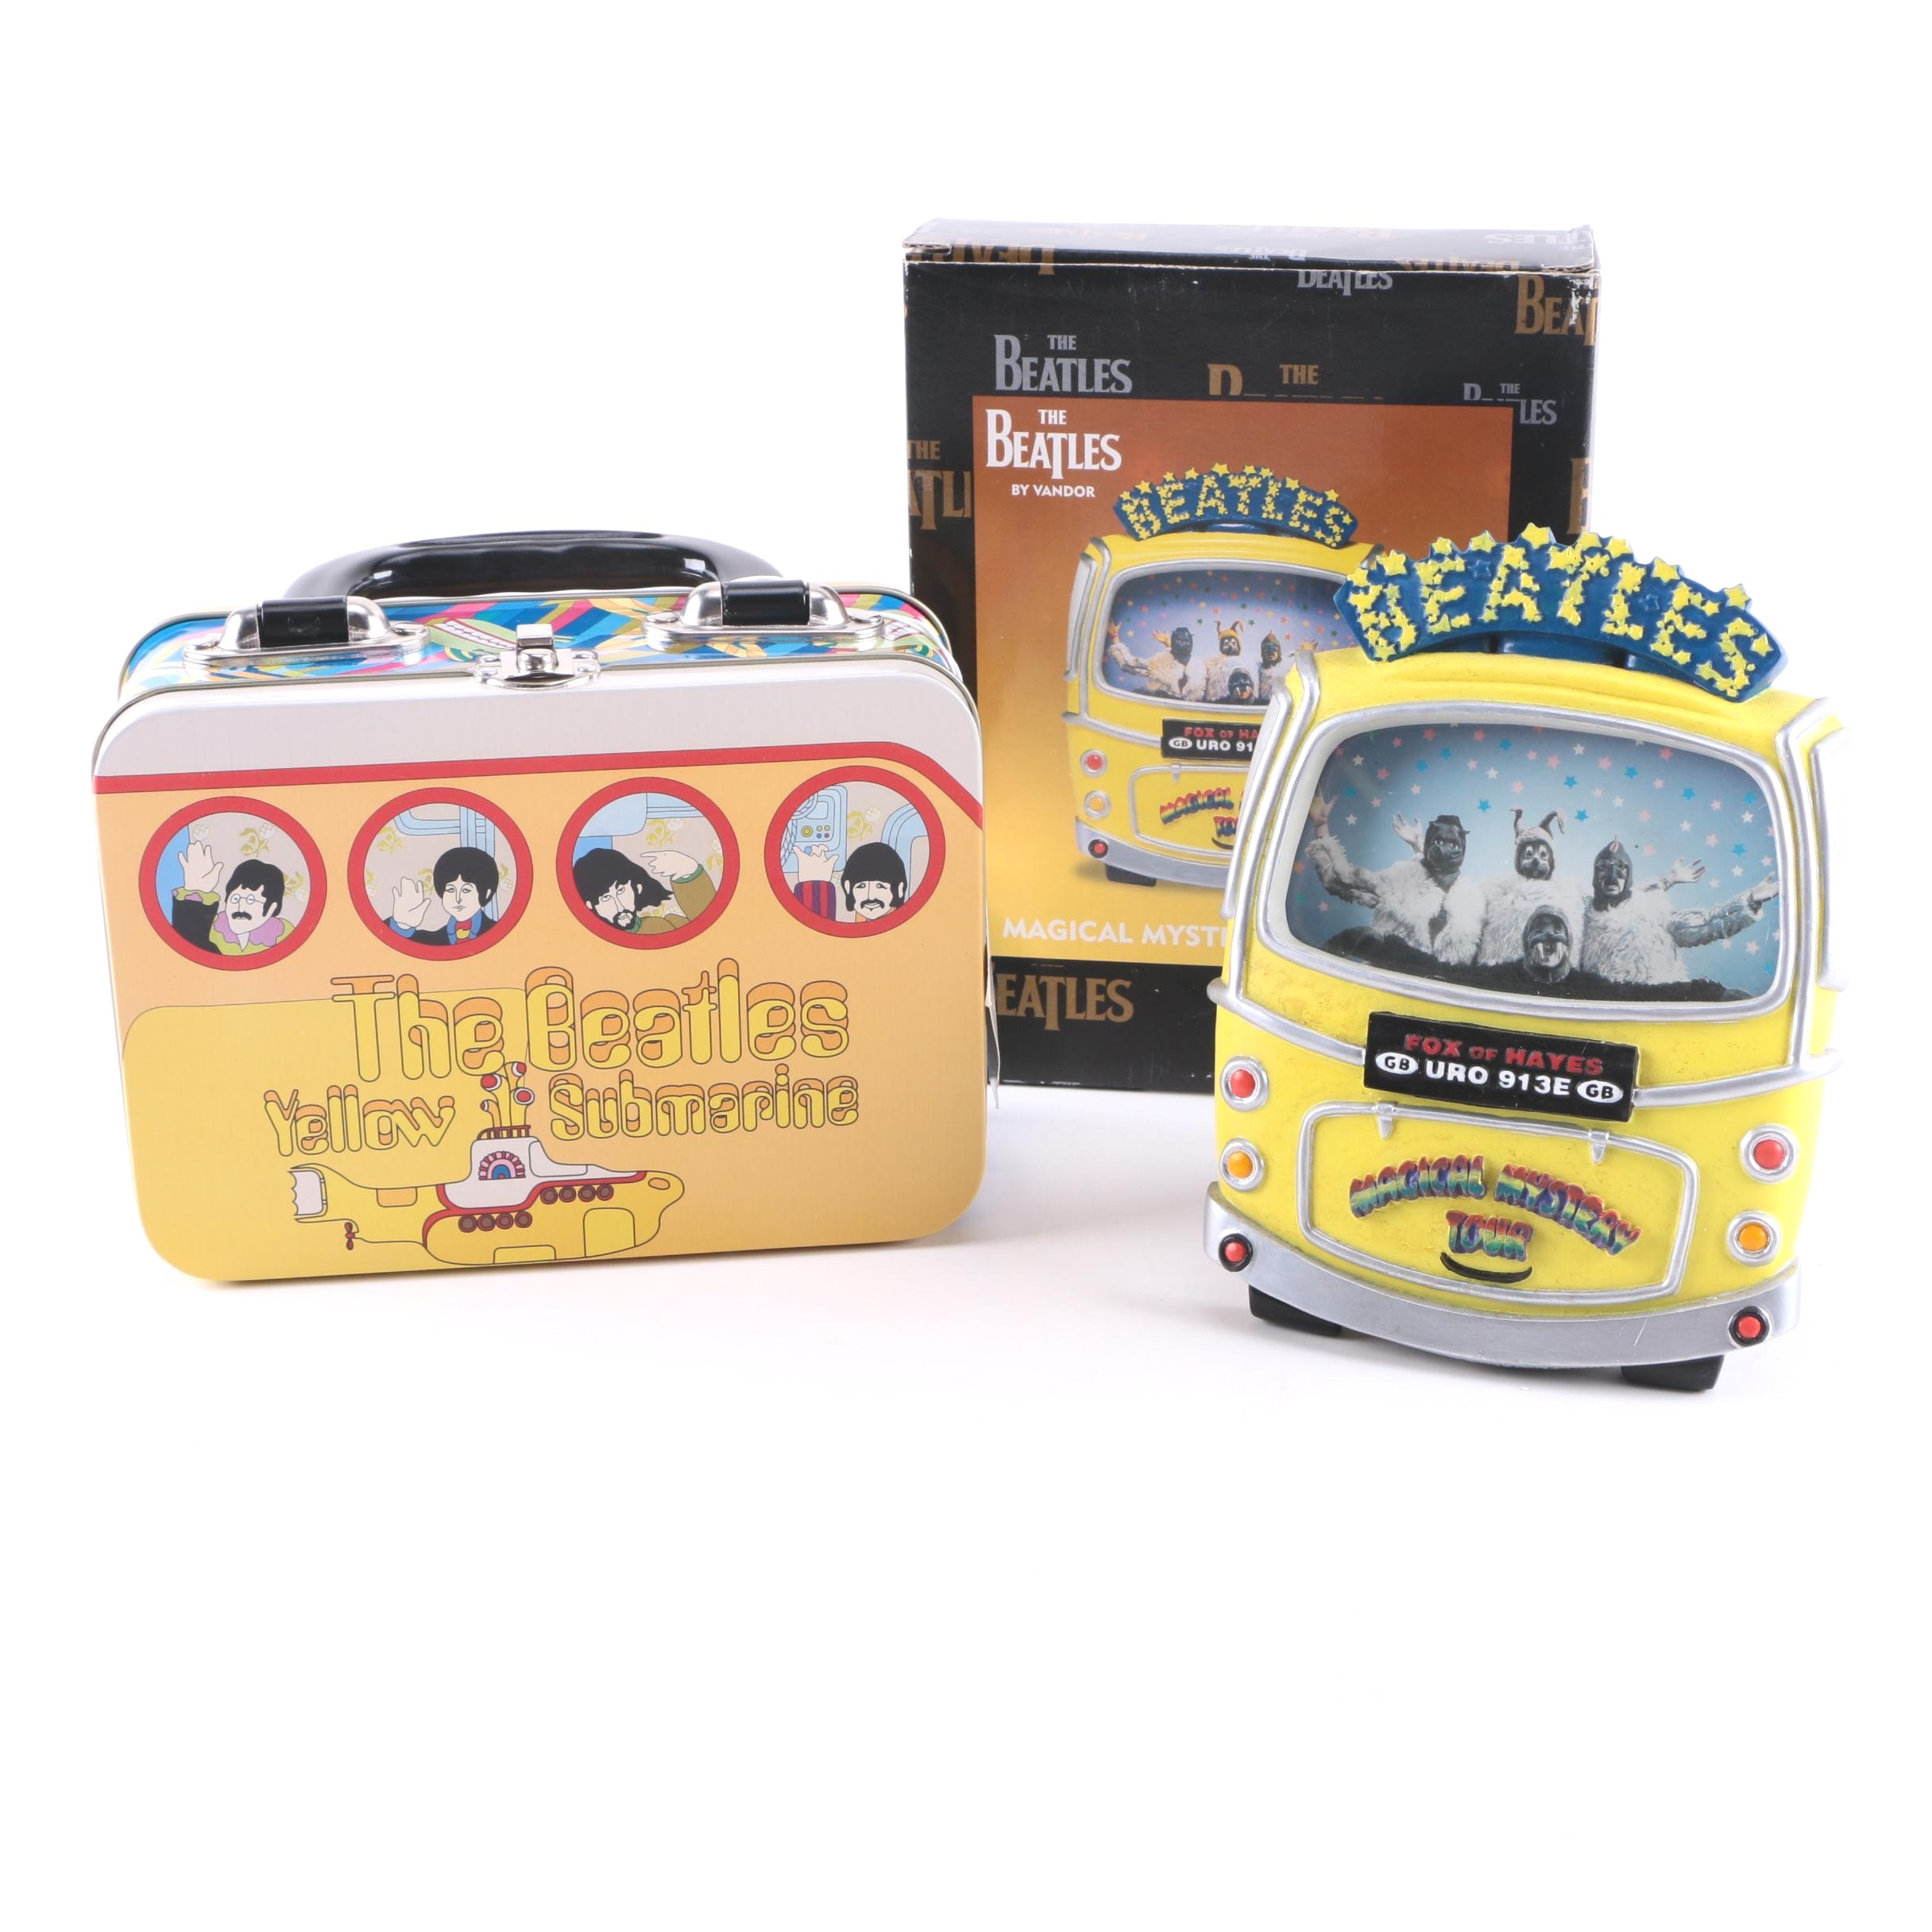 The Beatles 'Yellow Submarine' Lunchbox and 'Magical Mystery Tour' Photo Frame